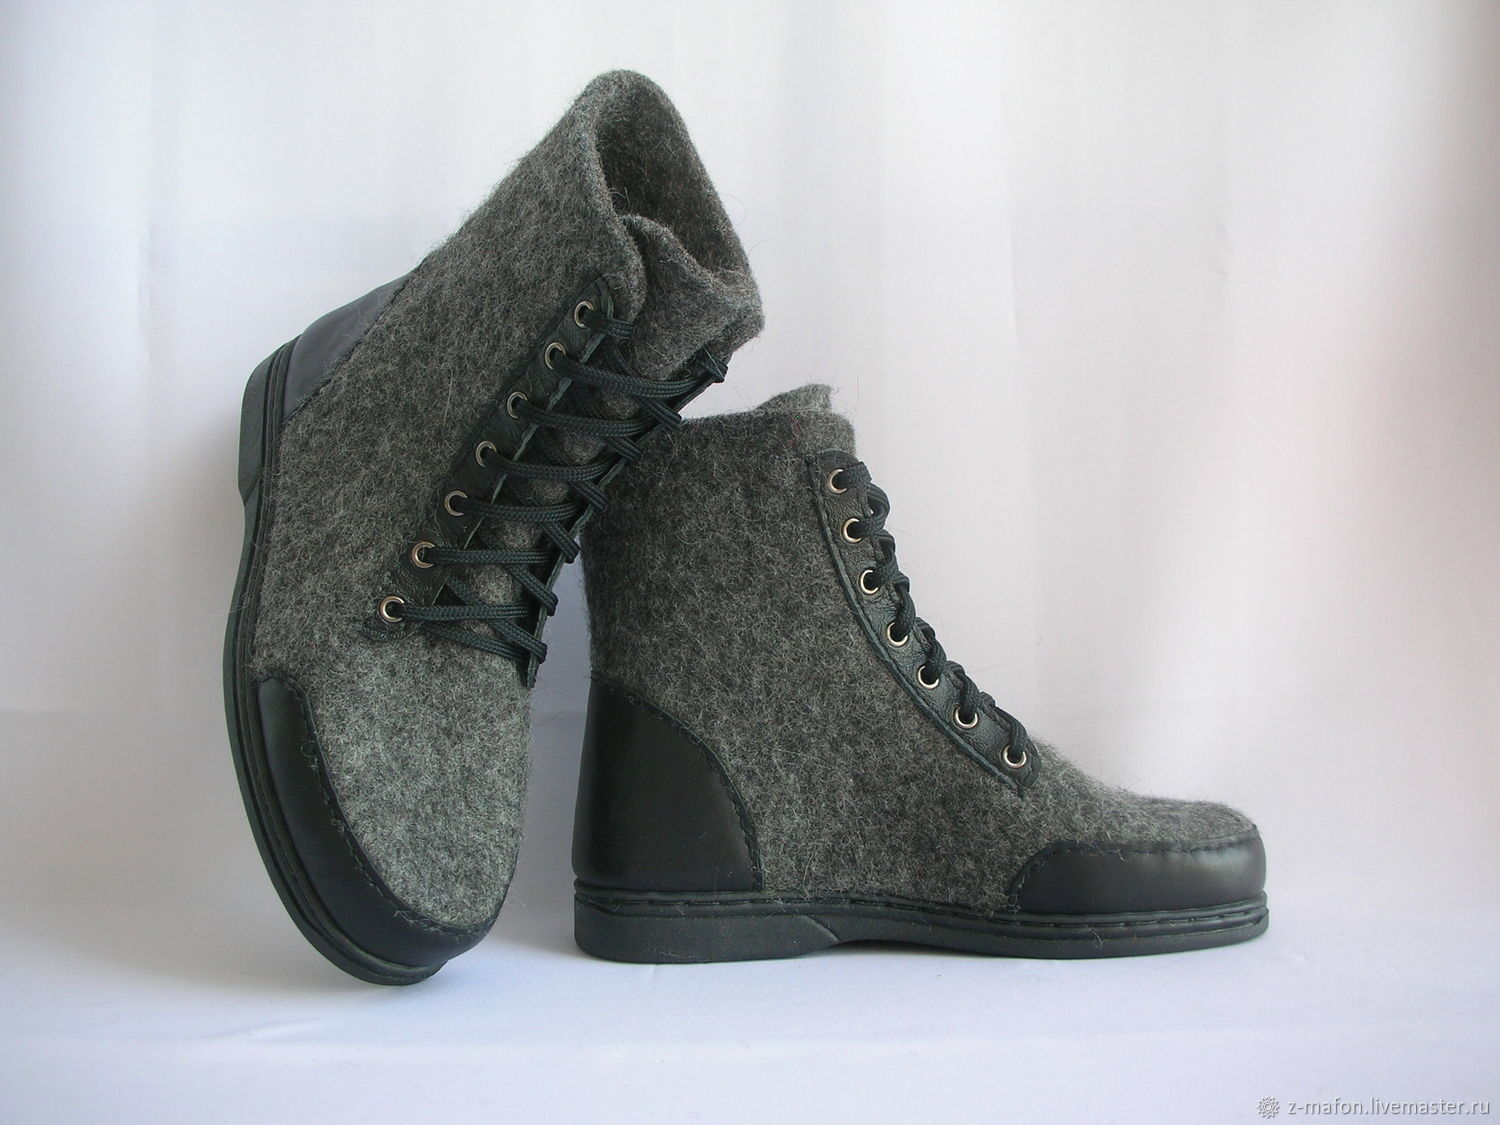 Felted grey boots with leather trim, Boots, Tomsk,  Фото №1